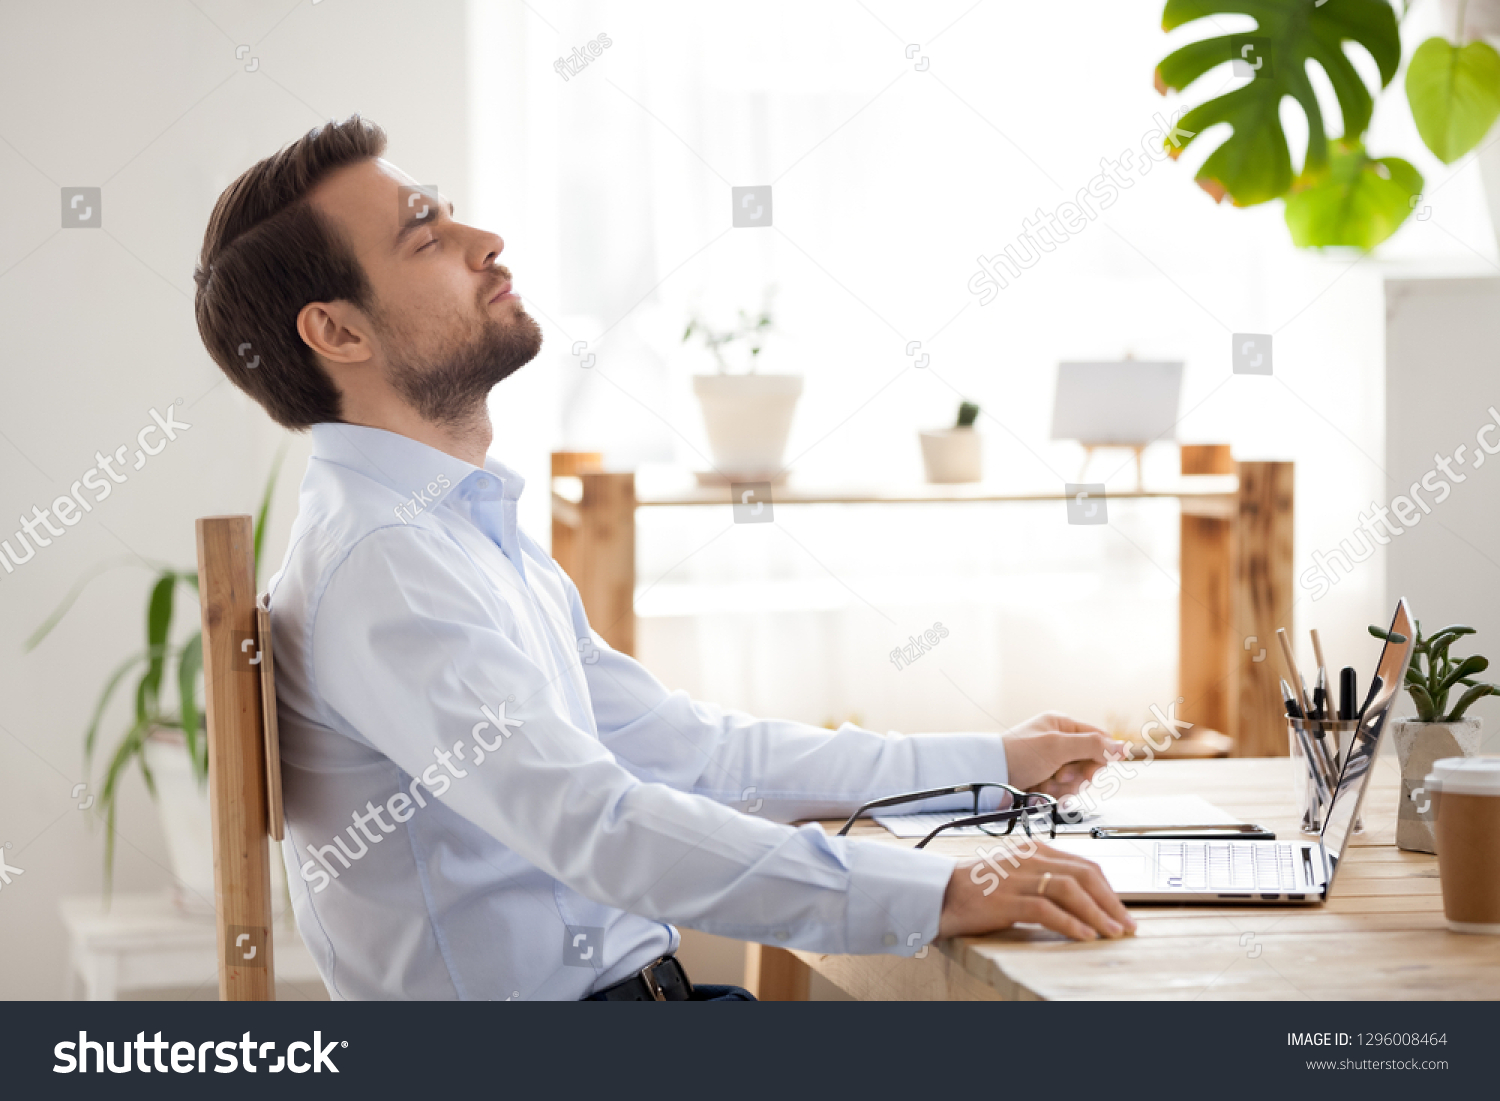 Satisfied calm businessman taking break to relax finished work sitting at desk enjoying stress free job breathing fresh air, happy executive manager resting at workplace dreaming in quiet office #1296008464